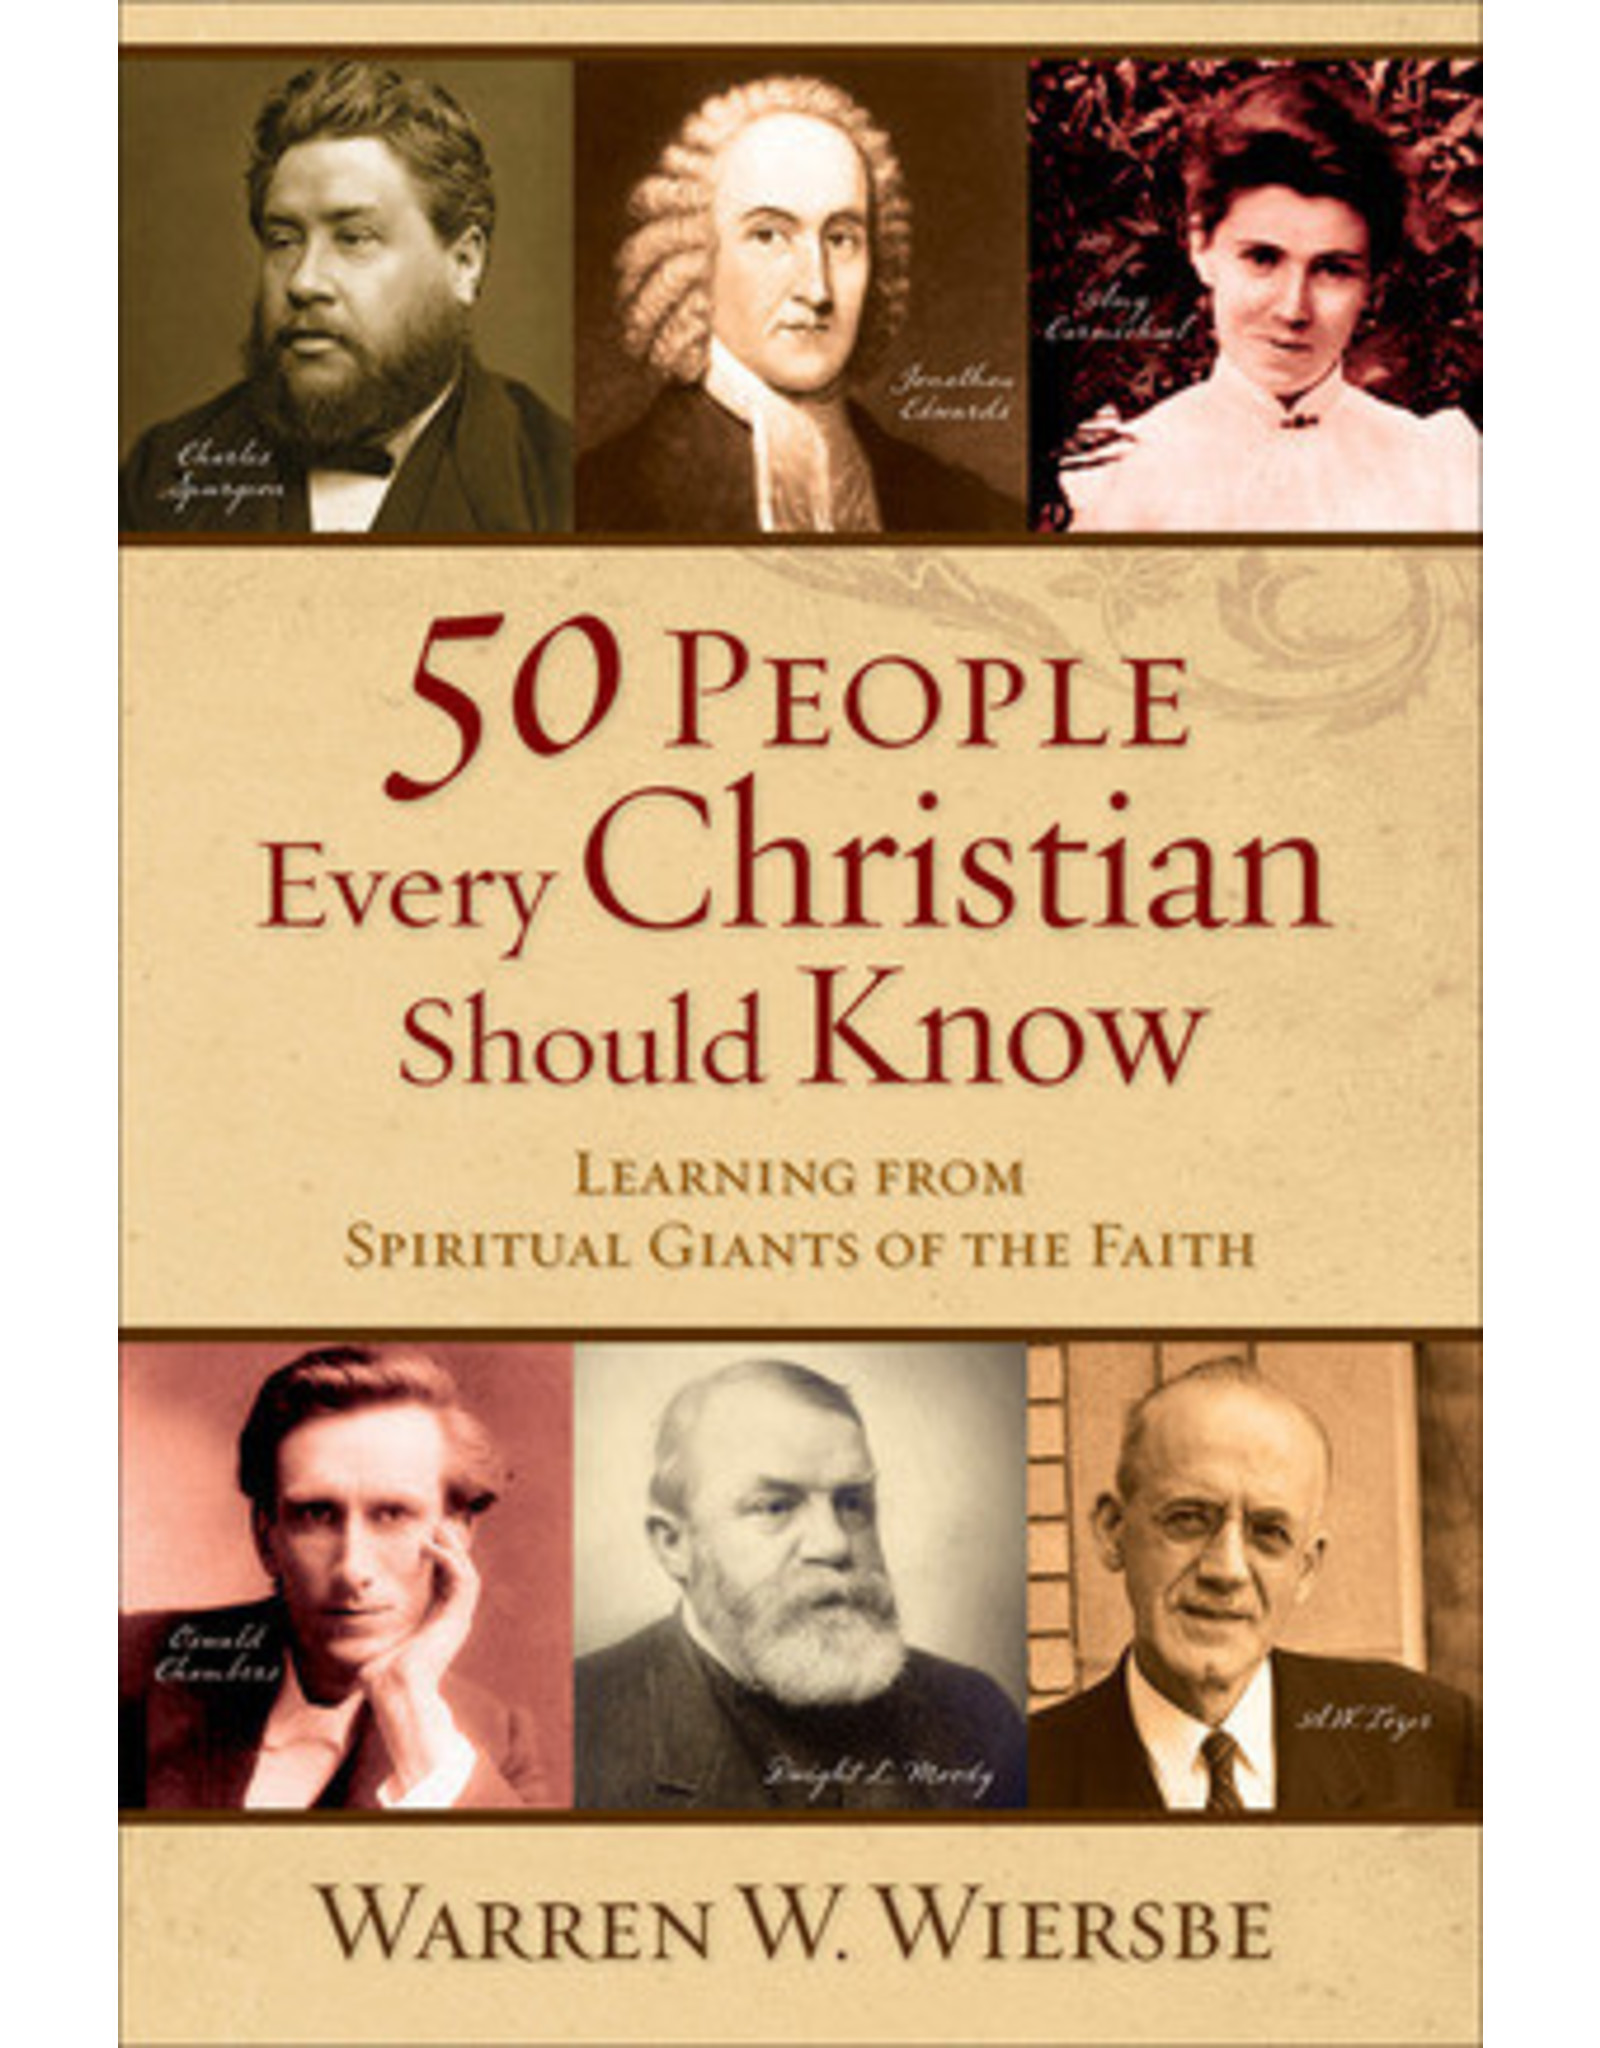 Wiersbe 50 People Every Christian Should Know